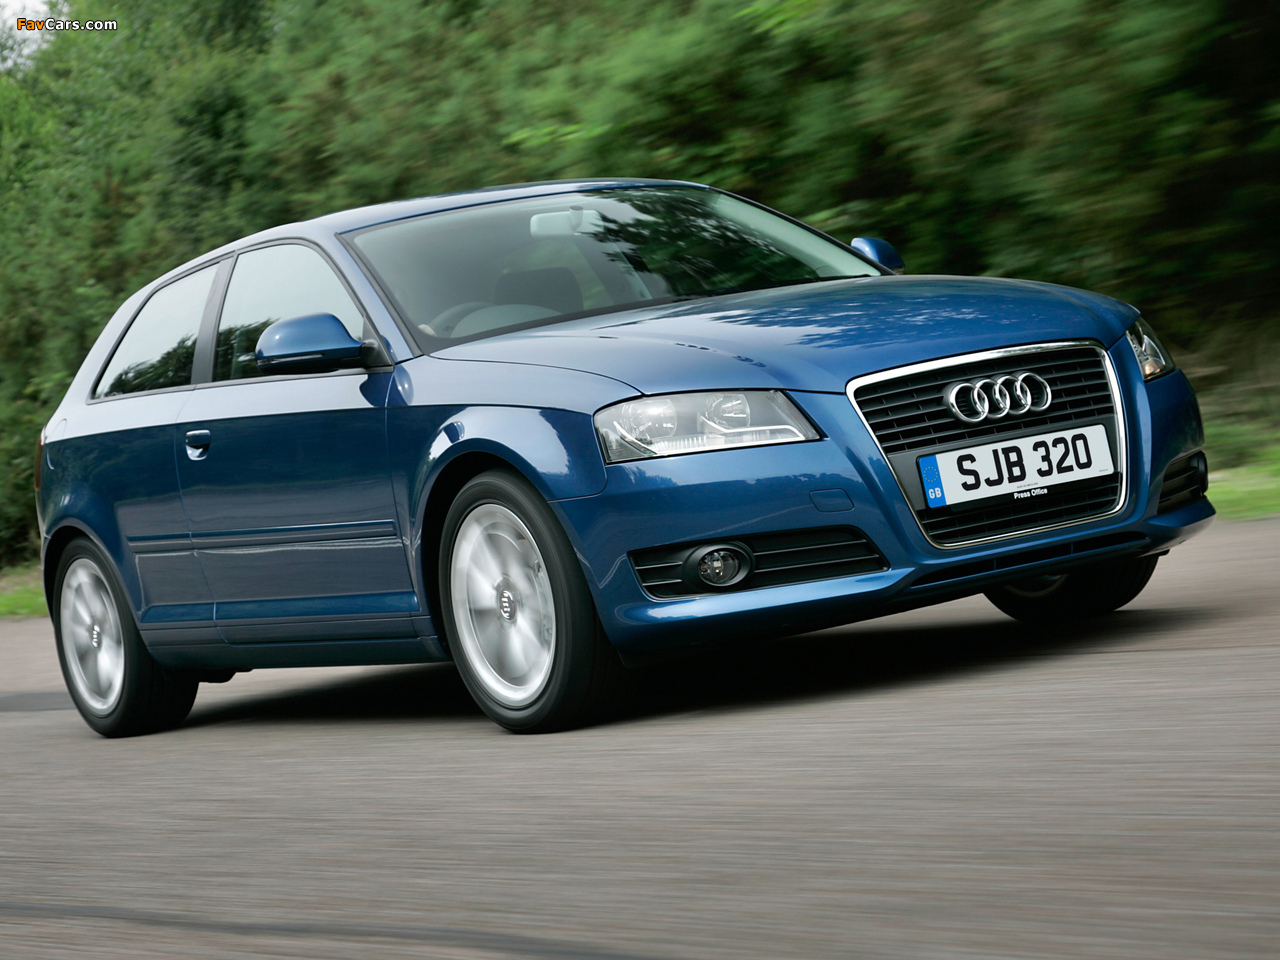 Audi A 3 2010 >> Audi A3 2.0T UK-spec 8P (2008–2010) images (1280x960)